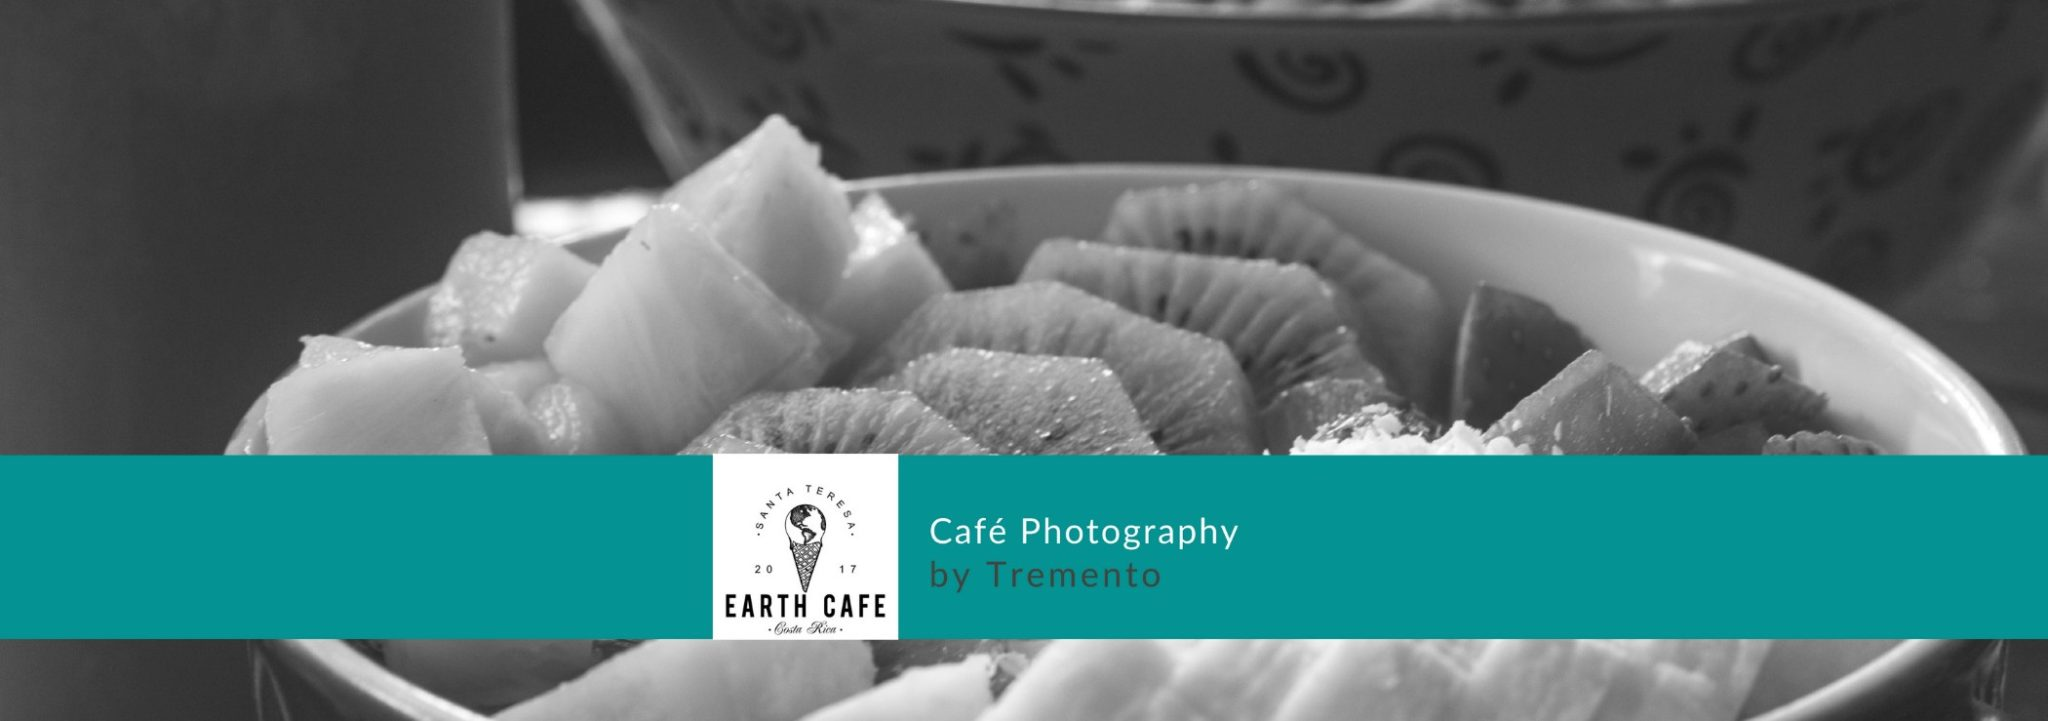 Tremento Portfolio - Café photography Earth Café